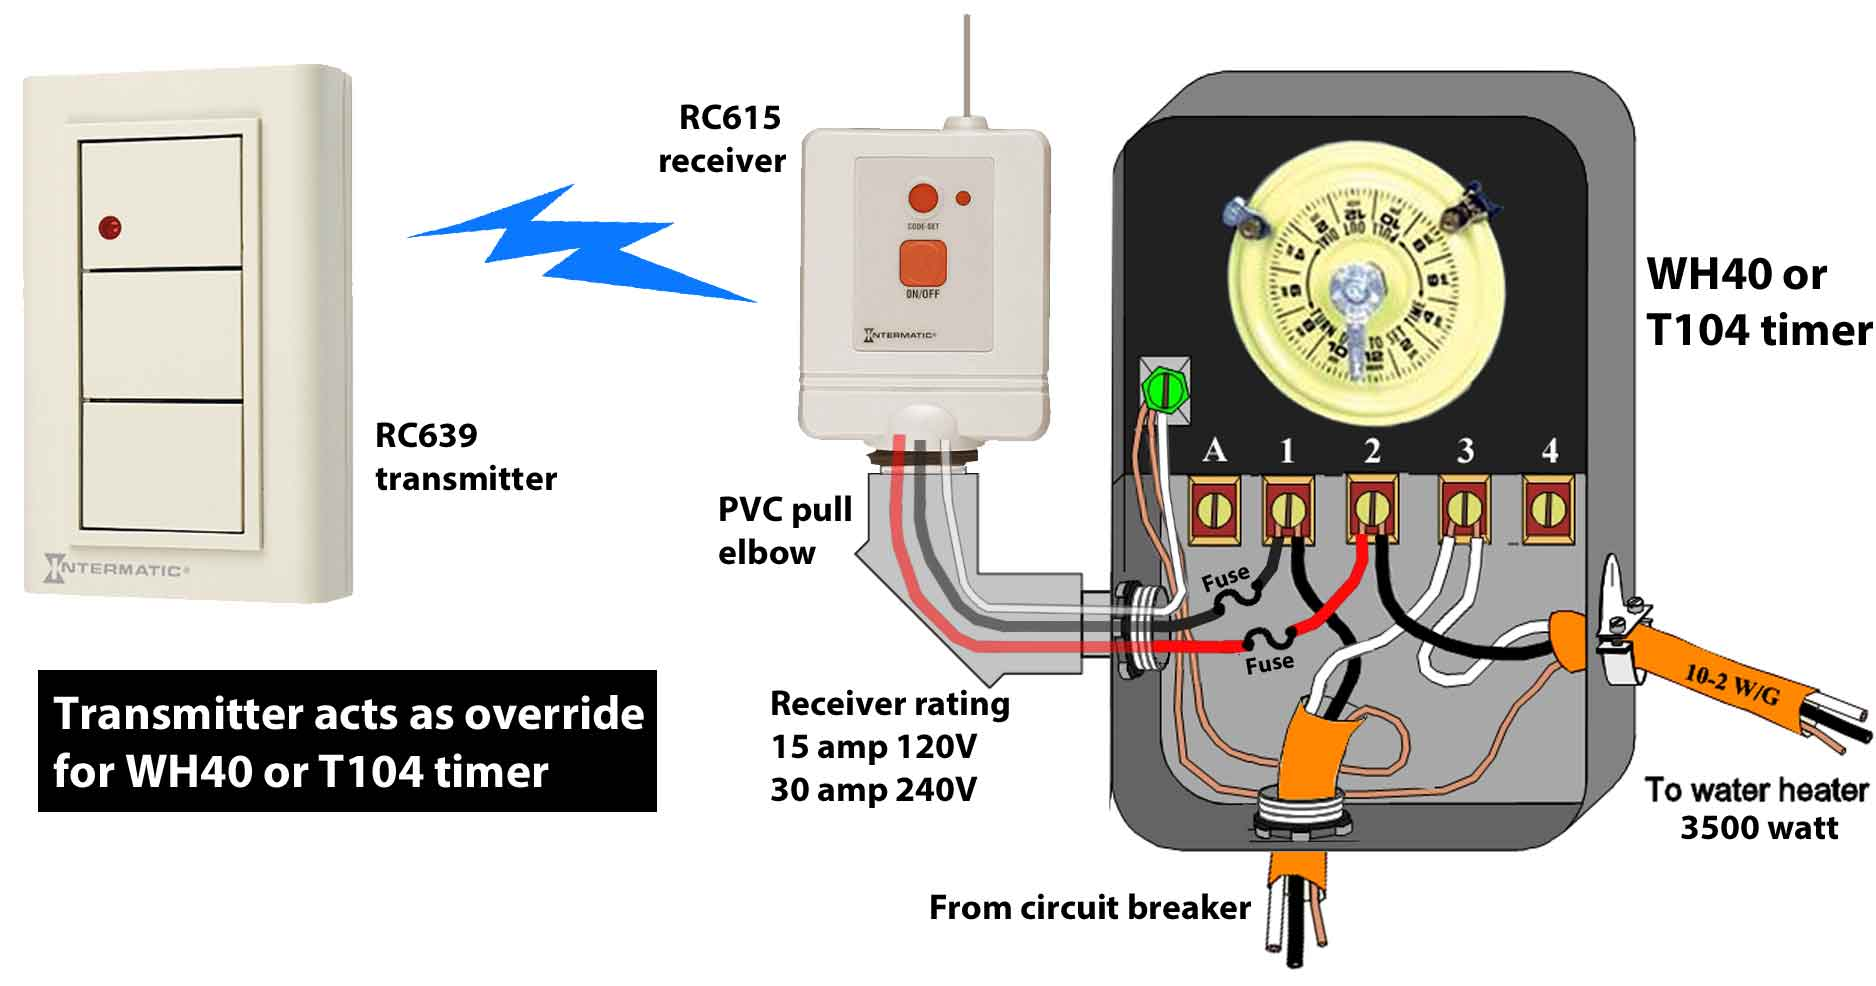 Intermatic RC939 controls timer. Larger image